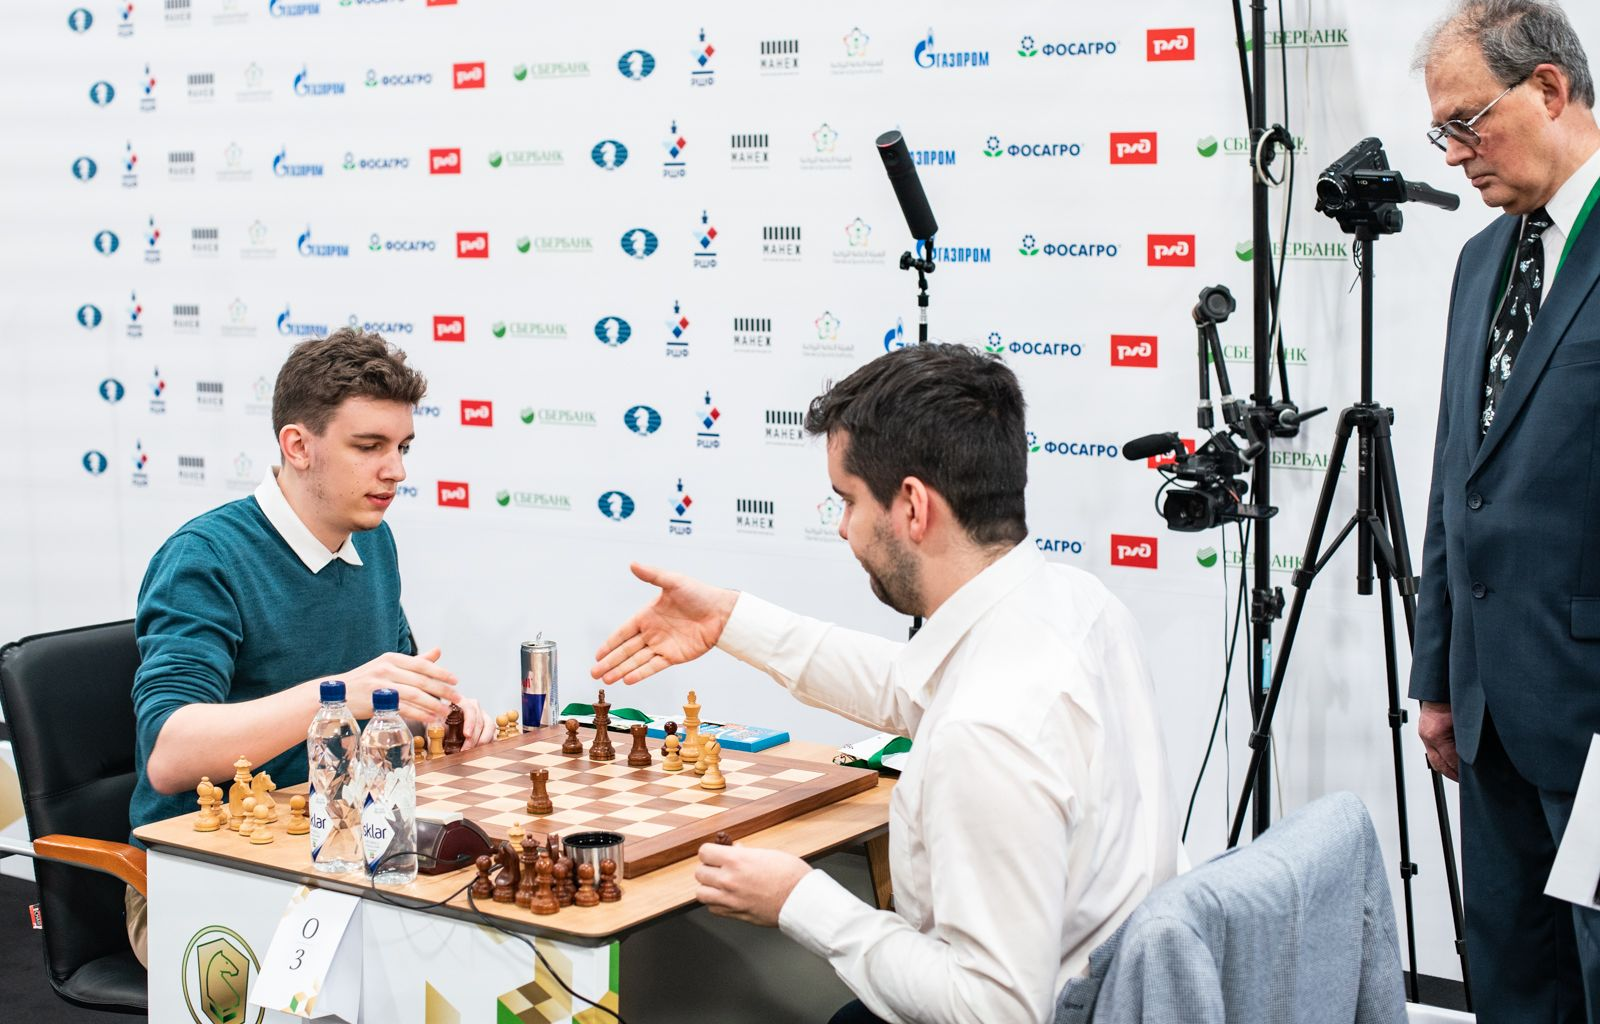 Carlsen, Lagno Win World Blitz Chess Championships - Chess com